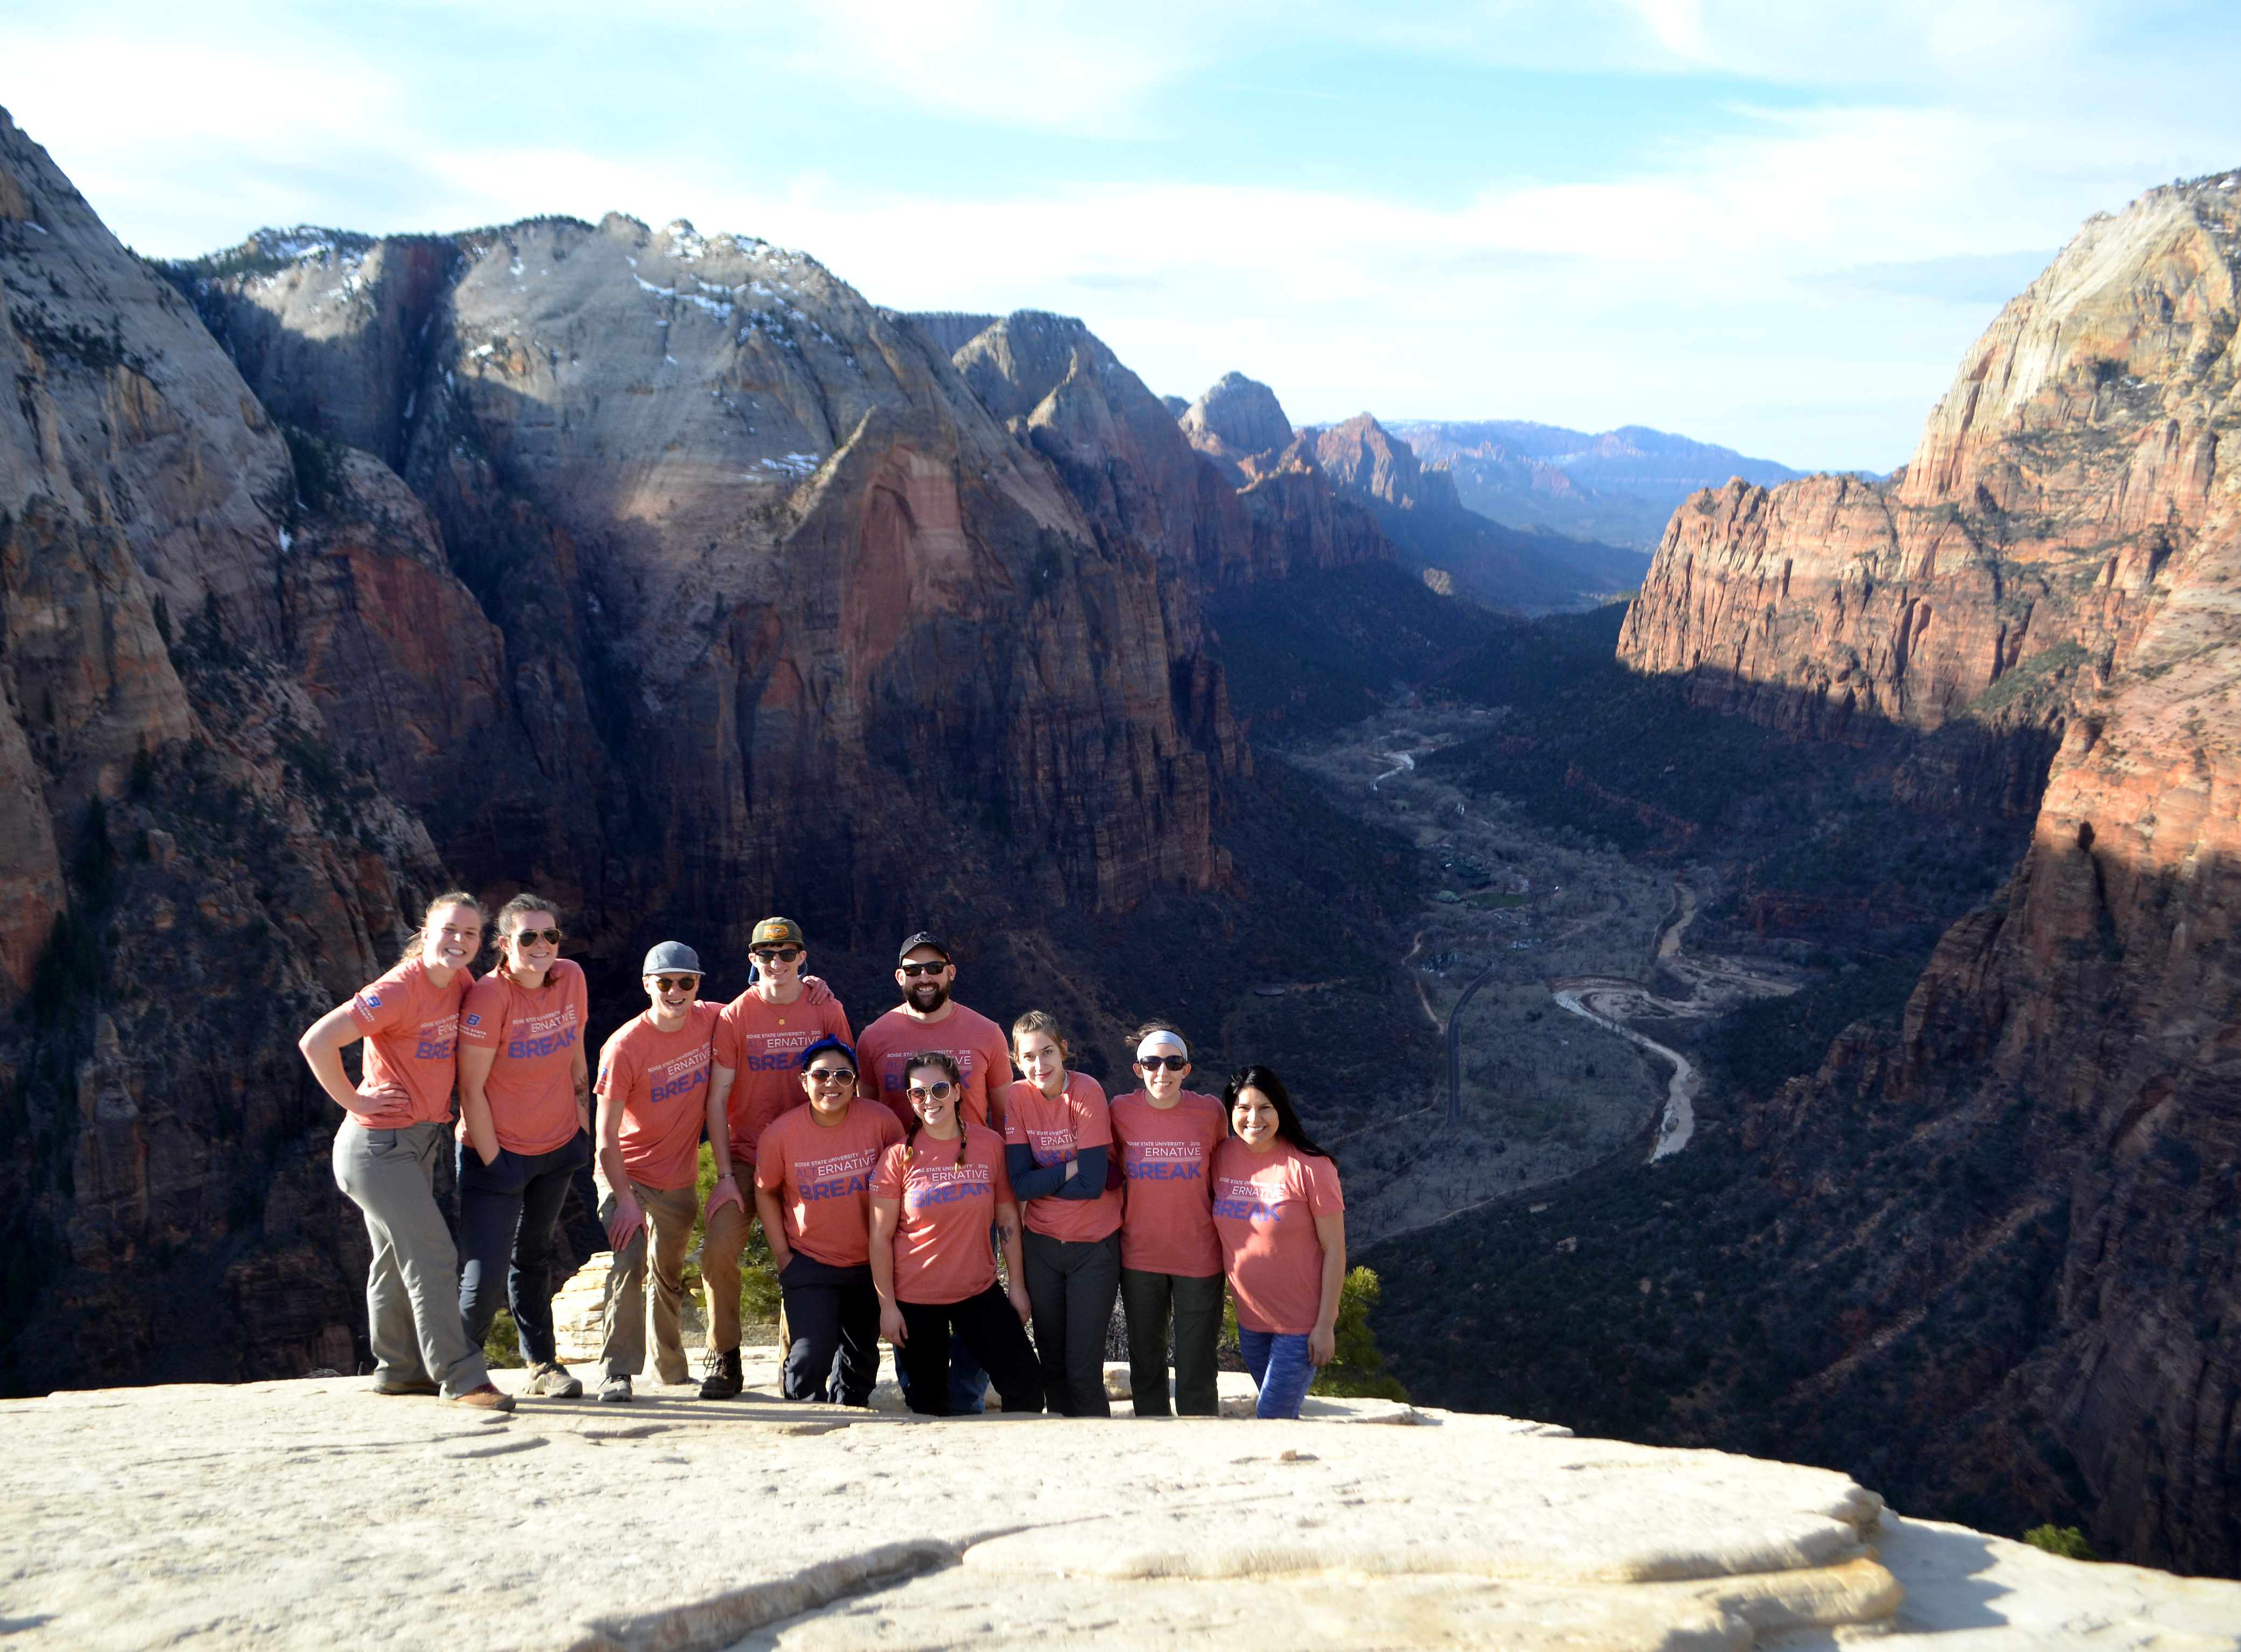 Group of students in orange shirts at Zion National Park